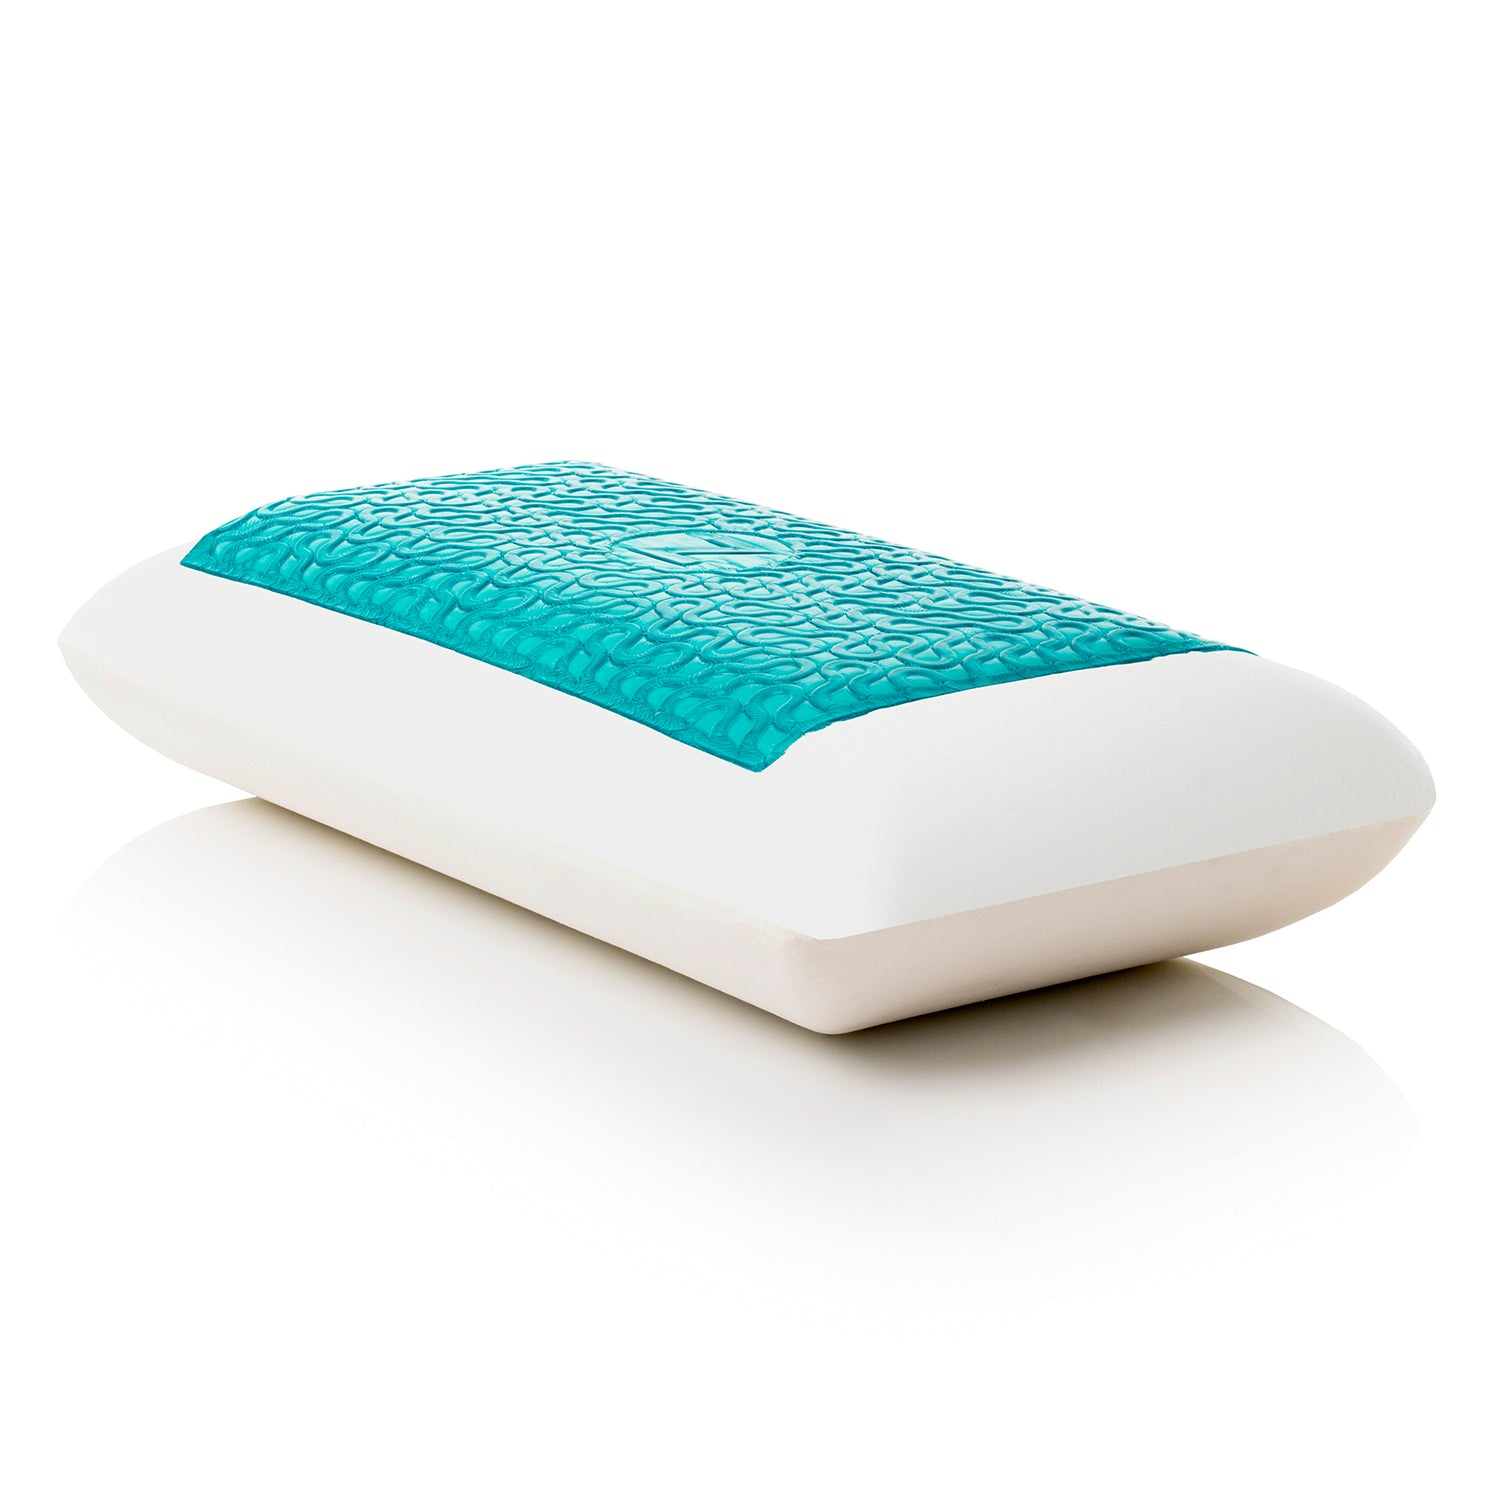 Dough Gel Pillow - Ultimate Comfort Sleep